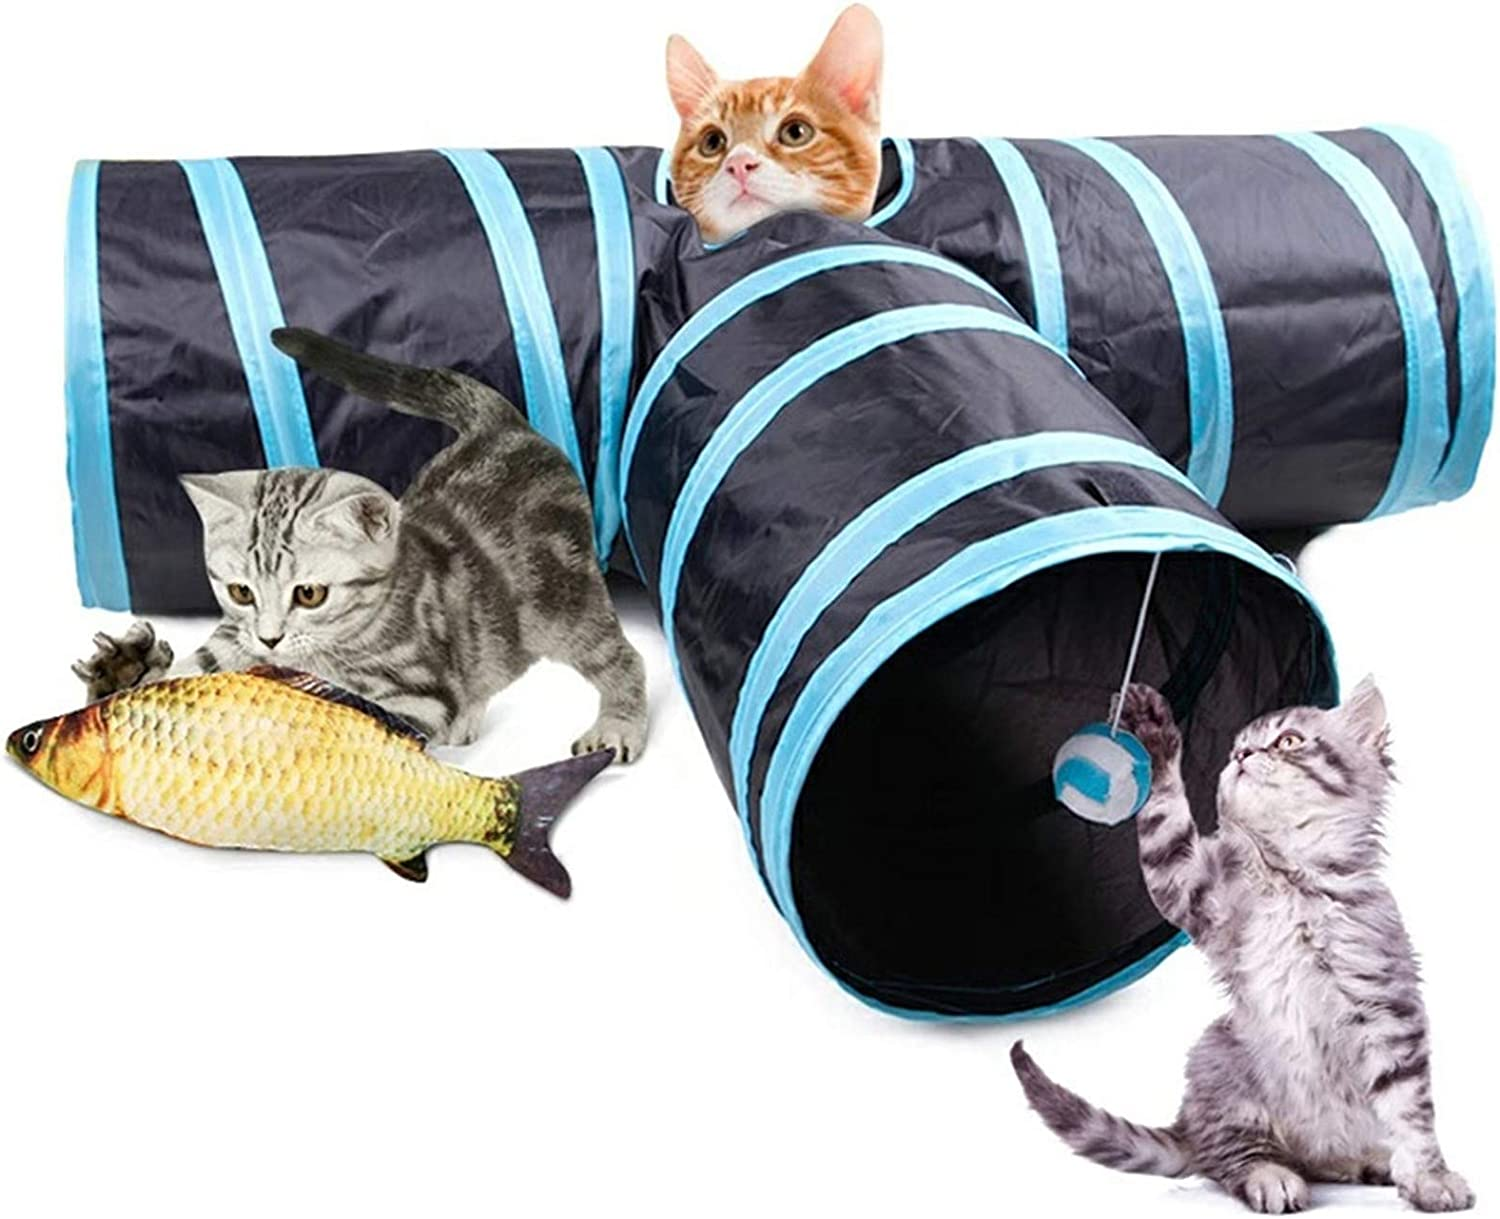 Blnboimrun Popular Courier shipping free shipping popular Pet Cat Tunnel for Way Tube Indoor,Collapsible 3 To